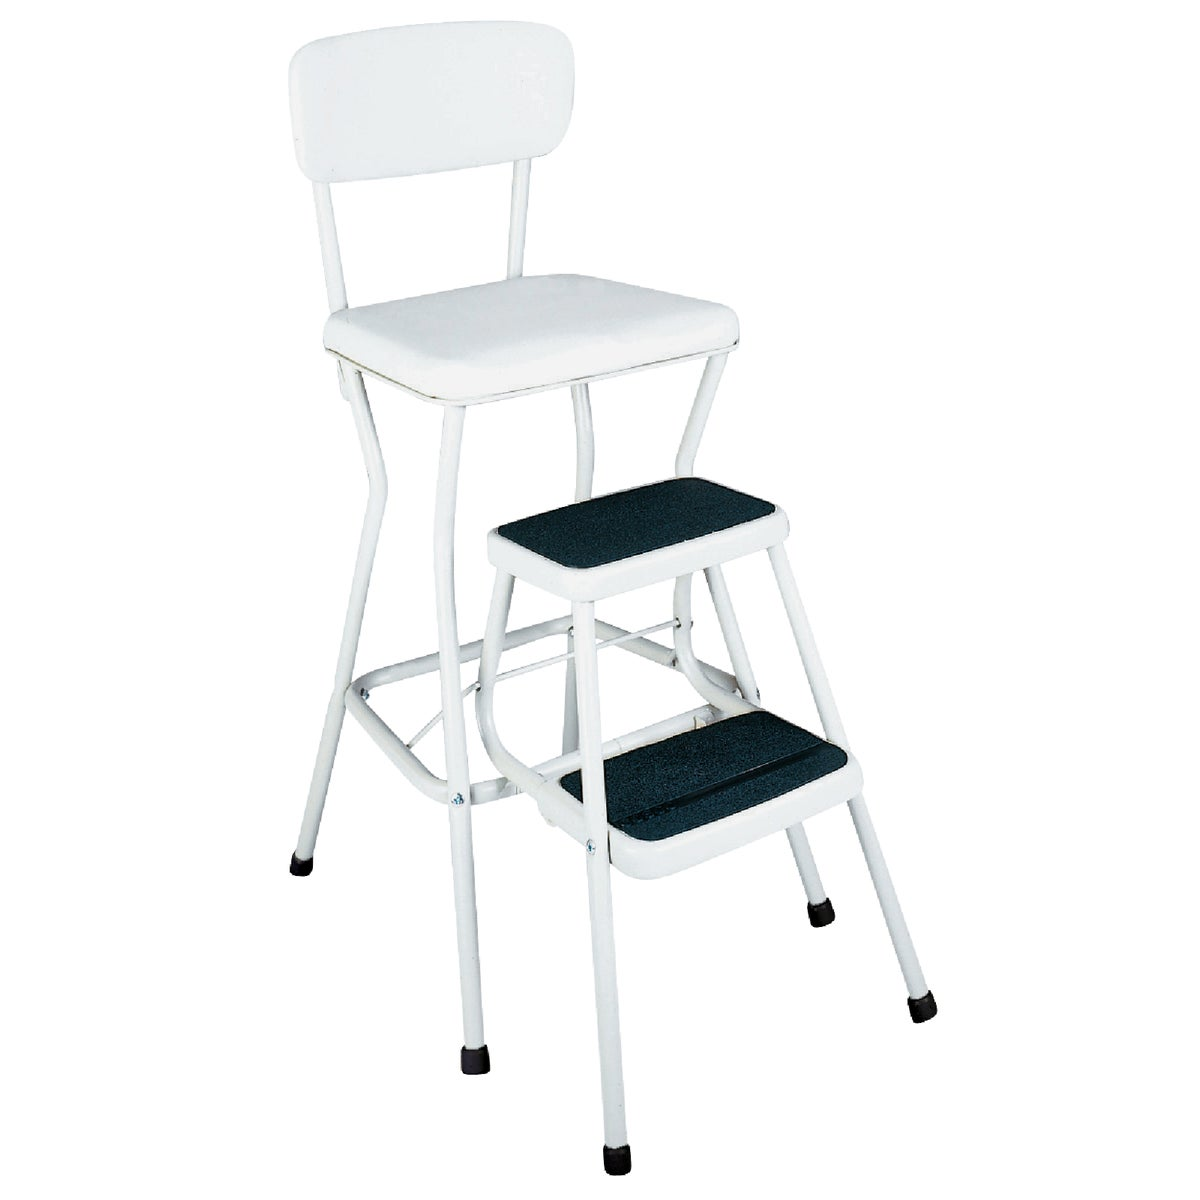 Cosco Home & Office CHAIR/STEP STOOL 11-118-WHT